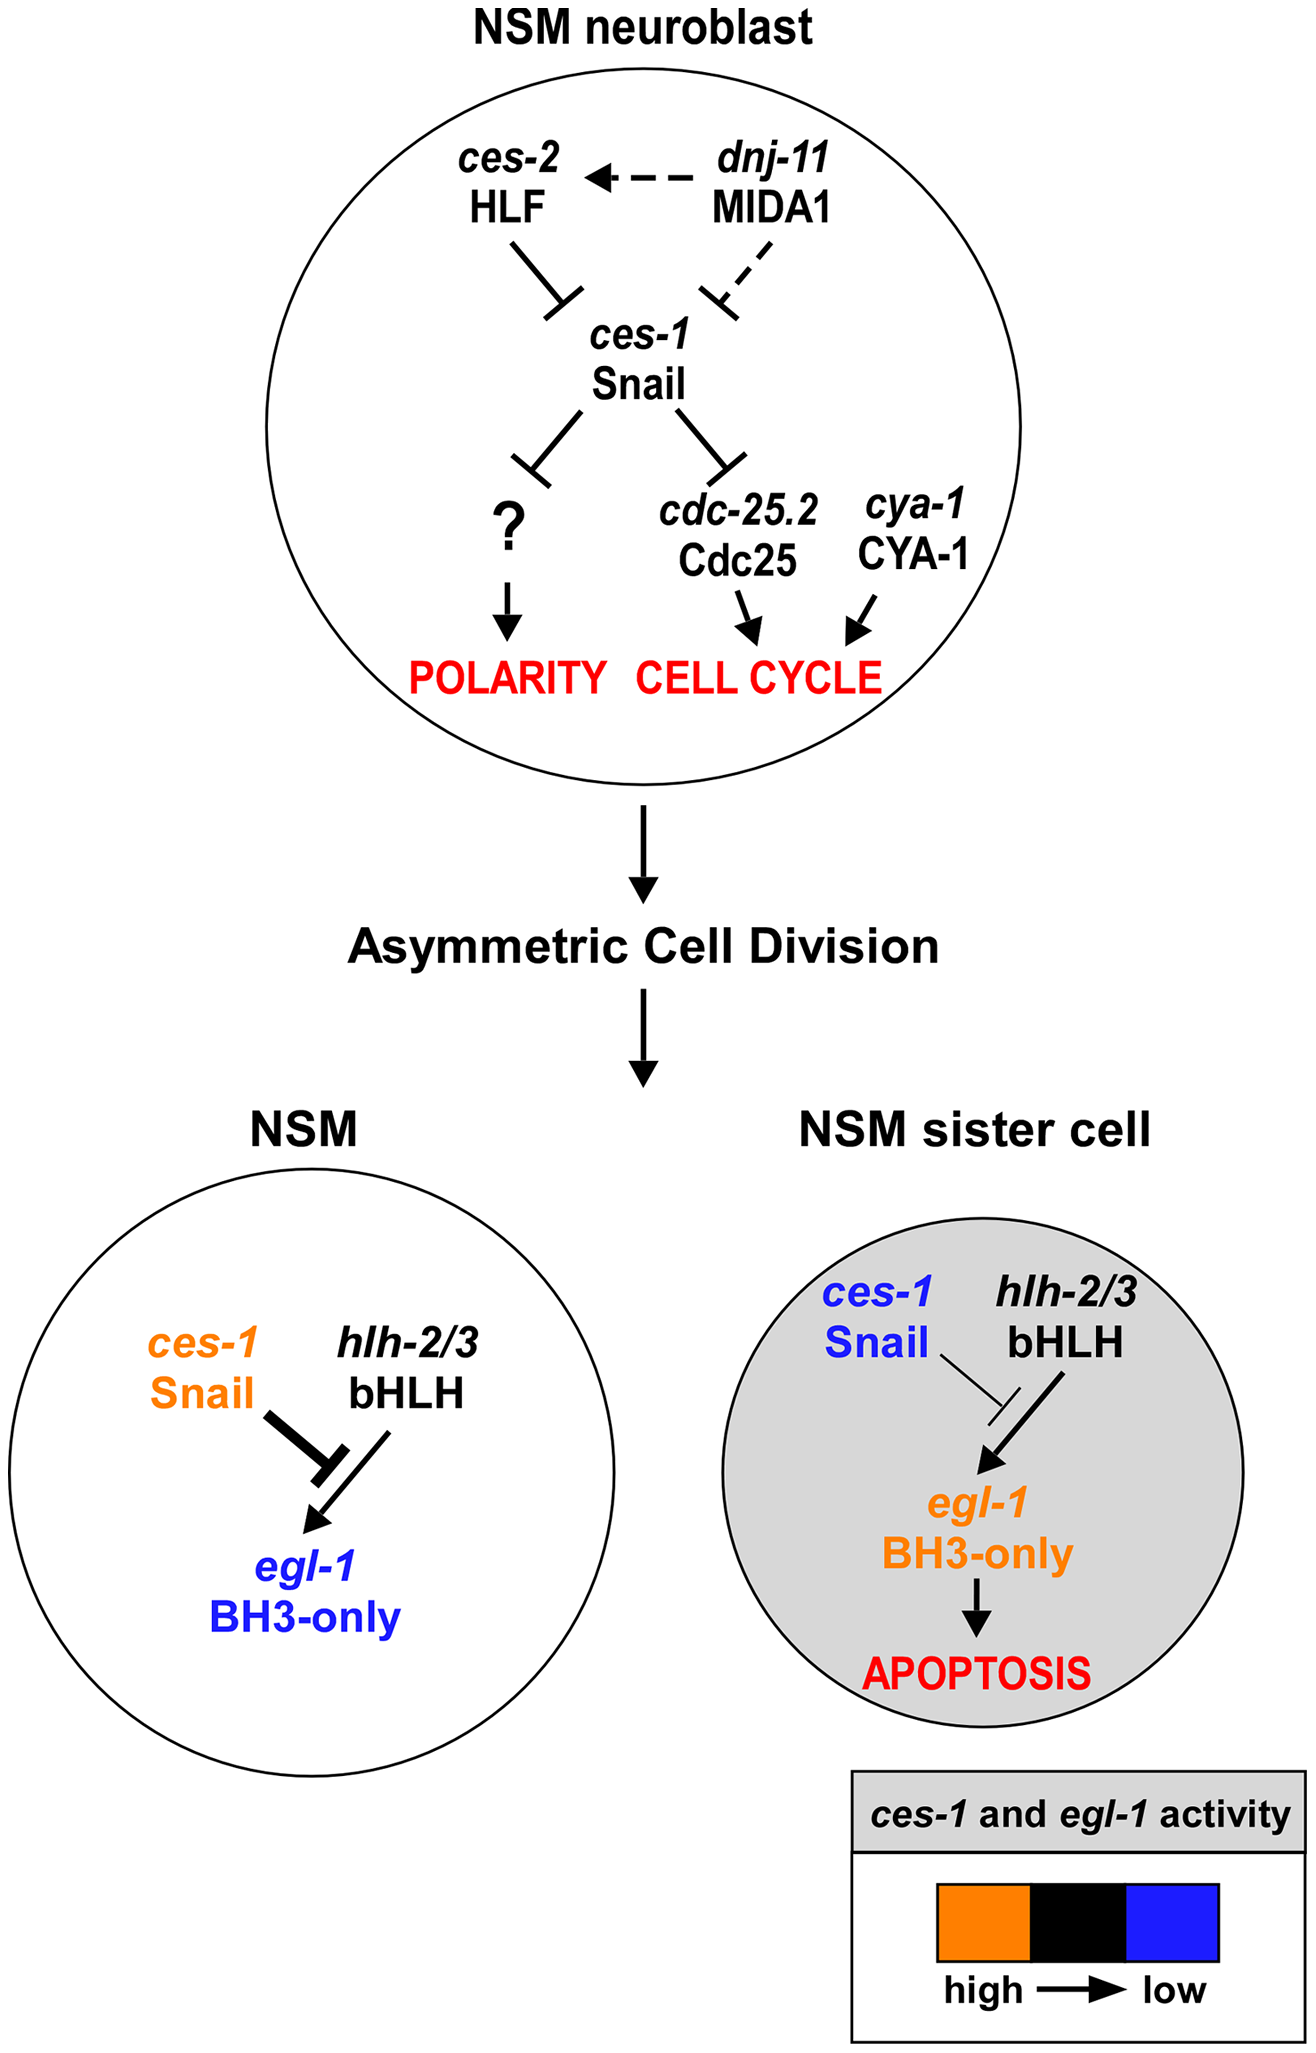 <i>ces-1</i> Snail represents a functional link between cell cycle progression, cell polarity and apoptosis in the NSM lineage.